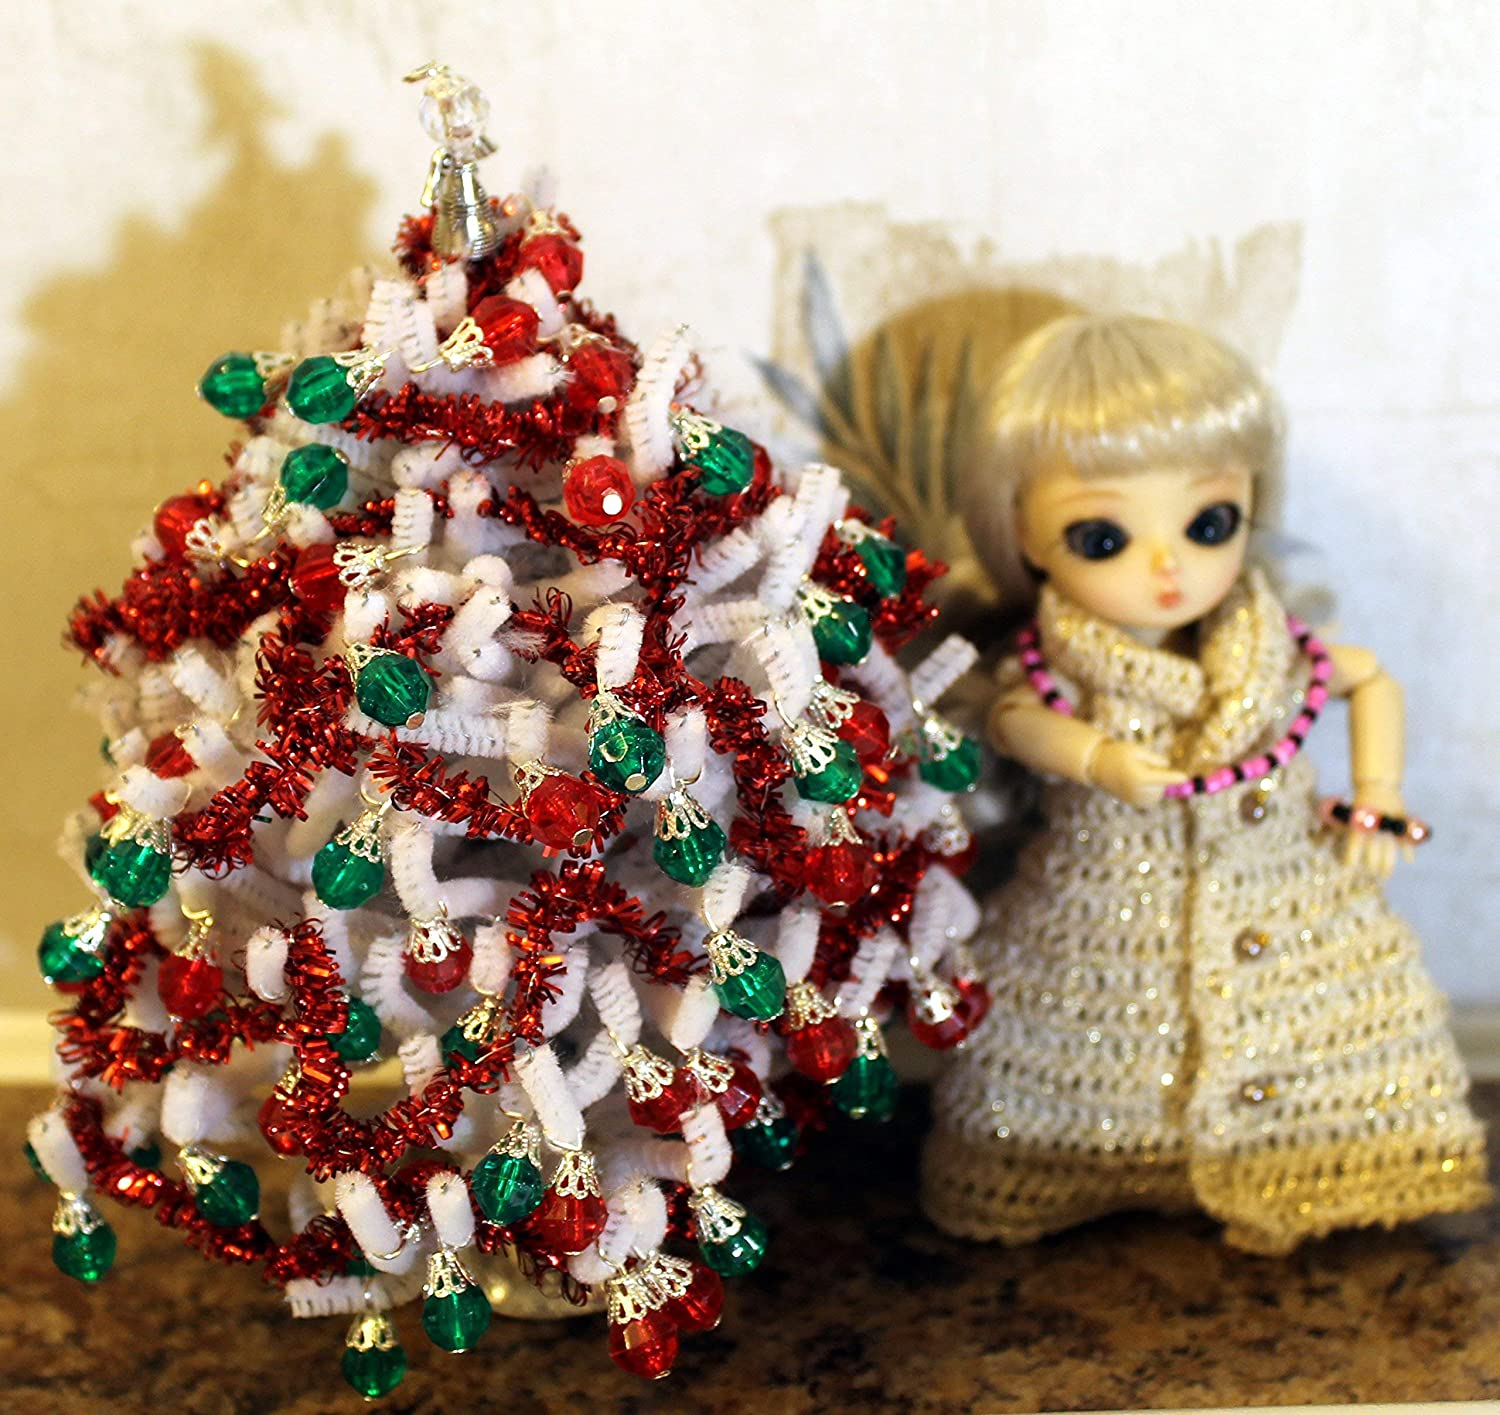 White Christmas Tree for Dollhouse 1:12 scale